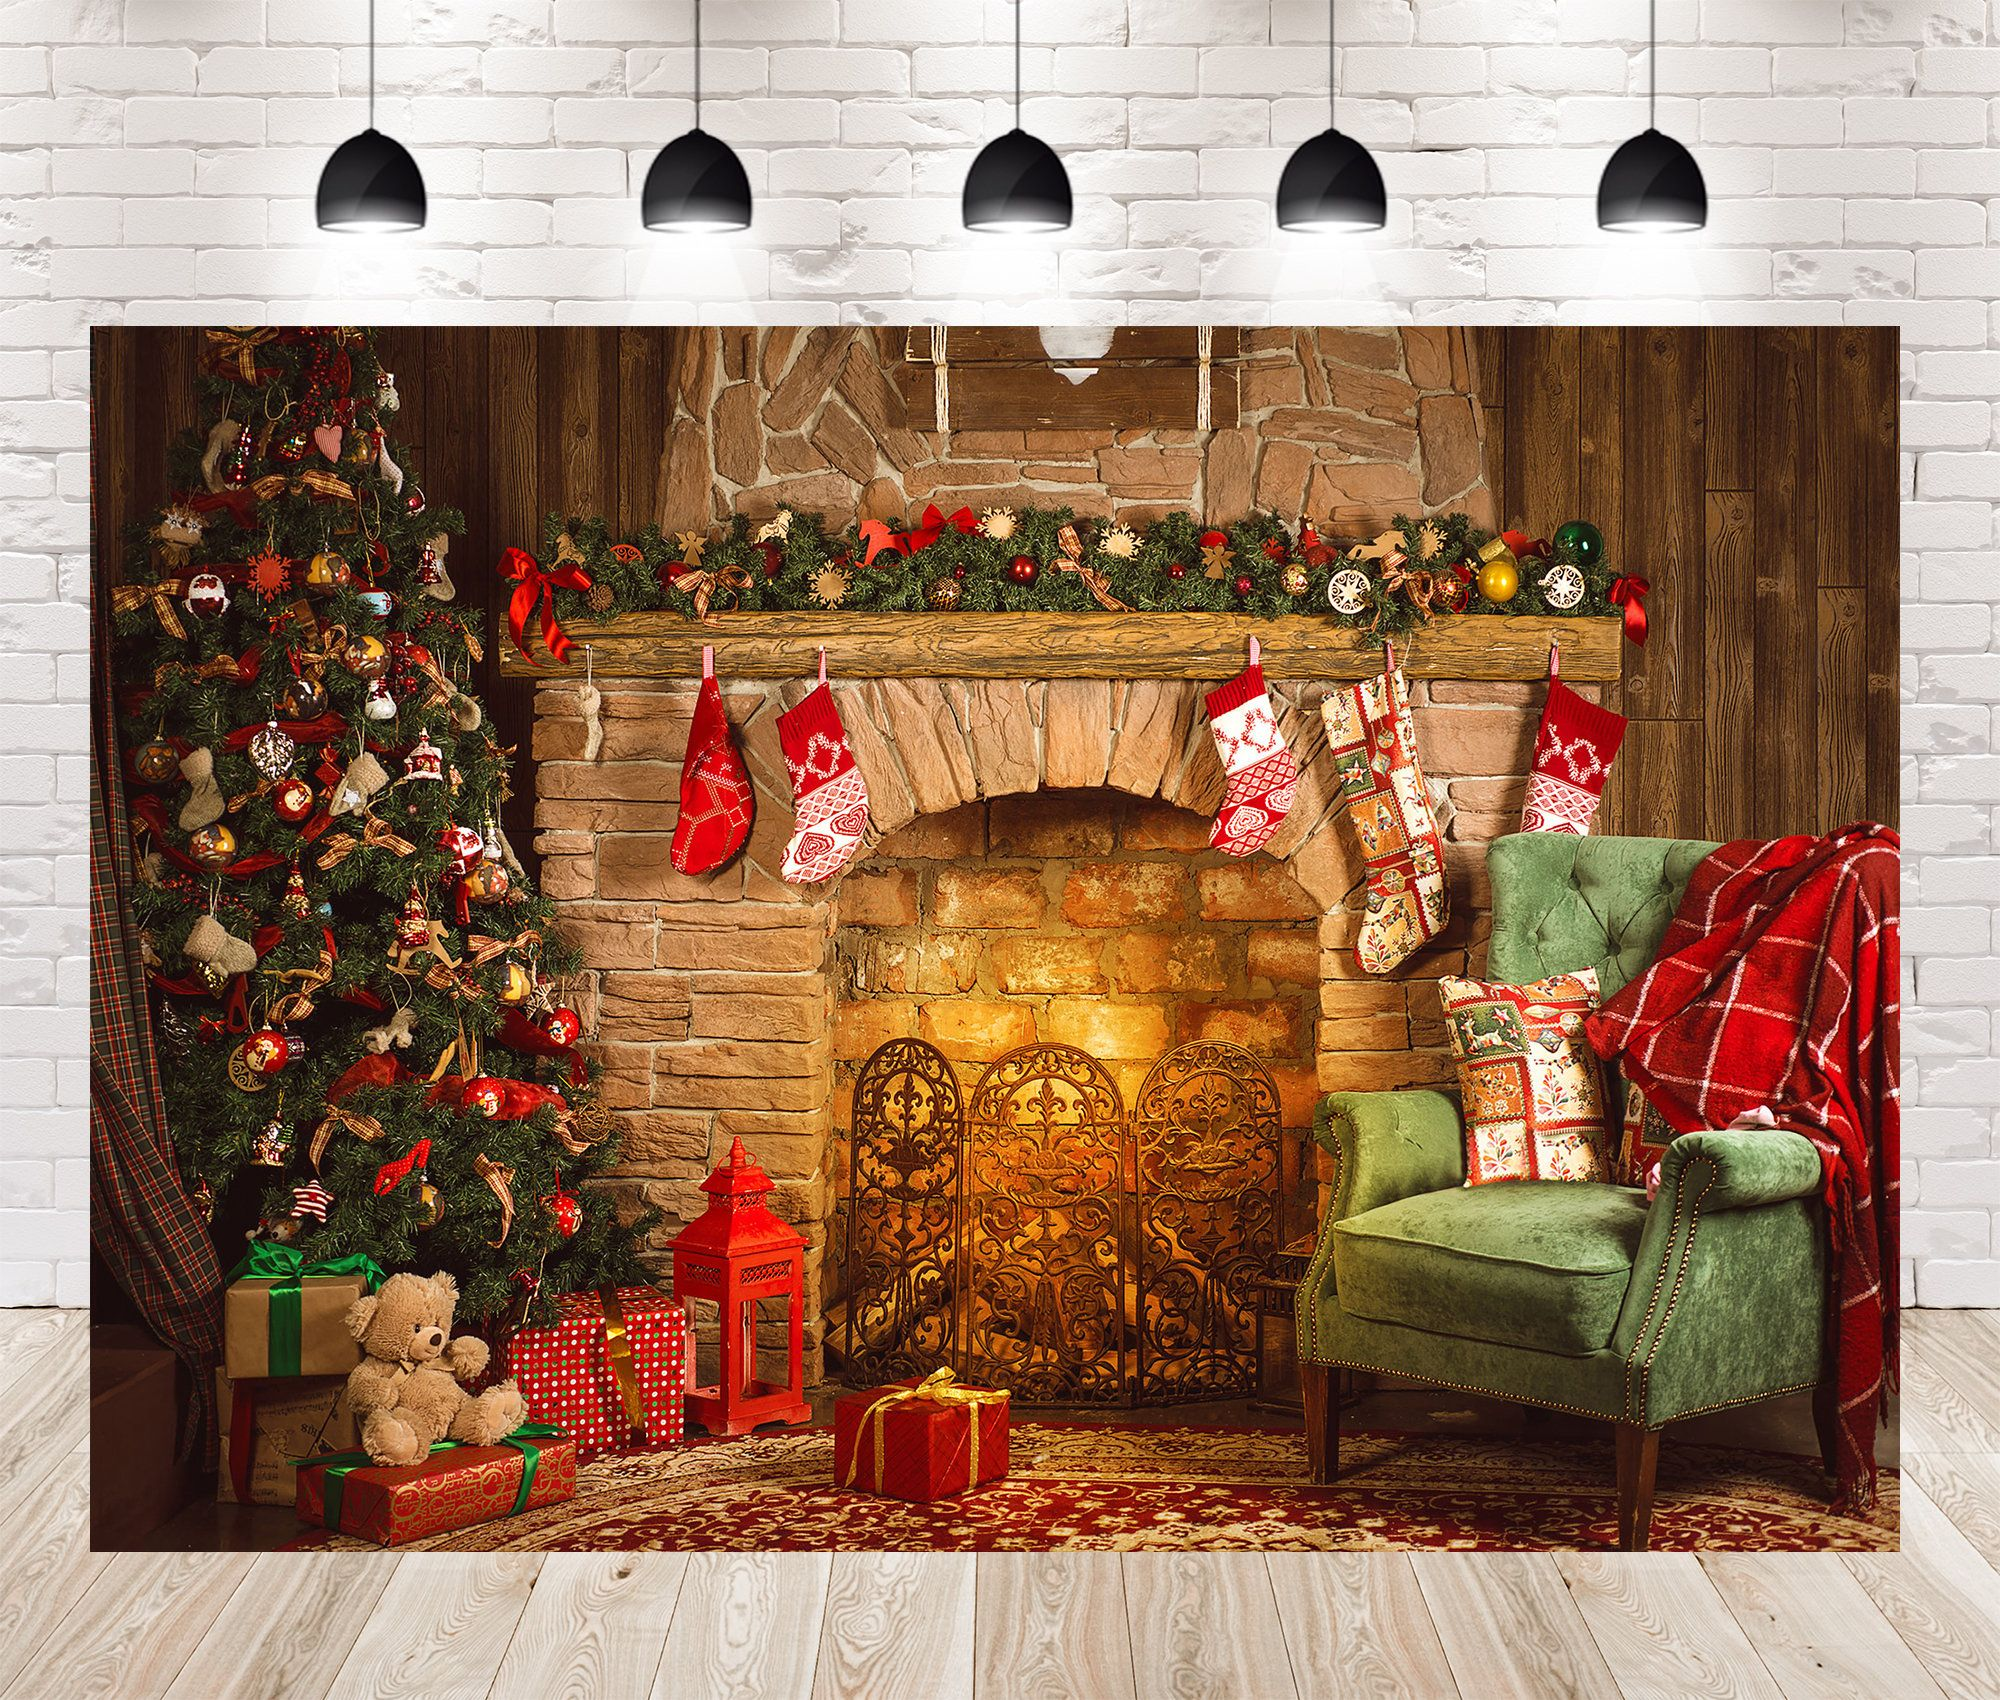 Christmas Tree Fireplace Socks Gift Box Photo Backdrops Booth Etsy In 2020 Christmas Tree And Fireplace Farmhouse Christmas Decor Christmas Backdrops